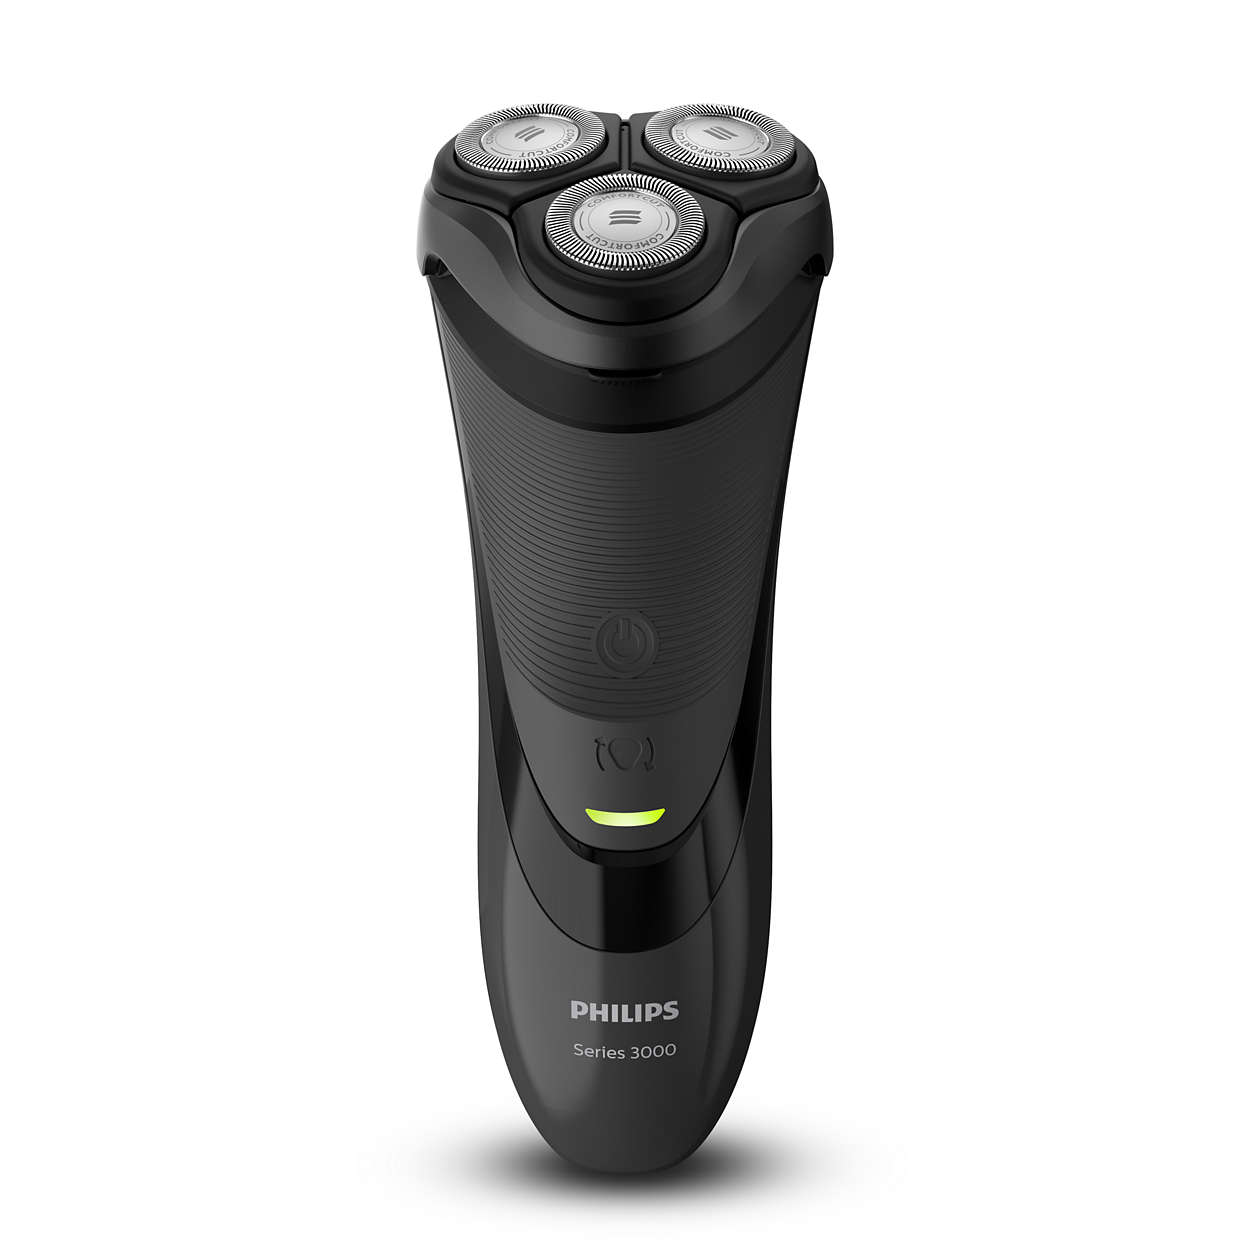 S3110 - Shaver Series 3000 系列電鬚刨